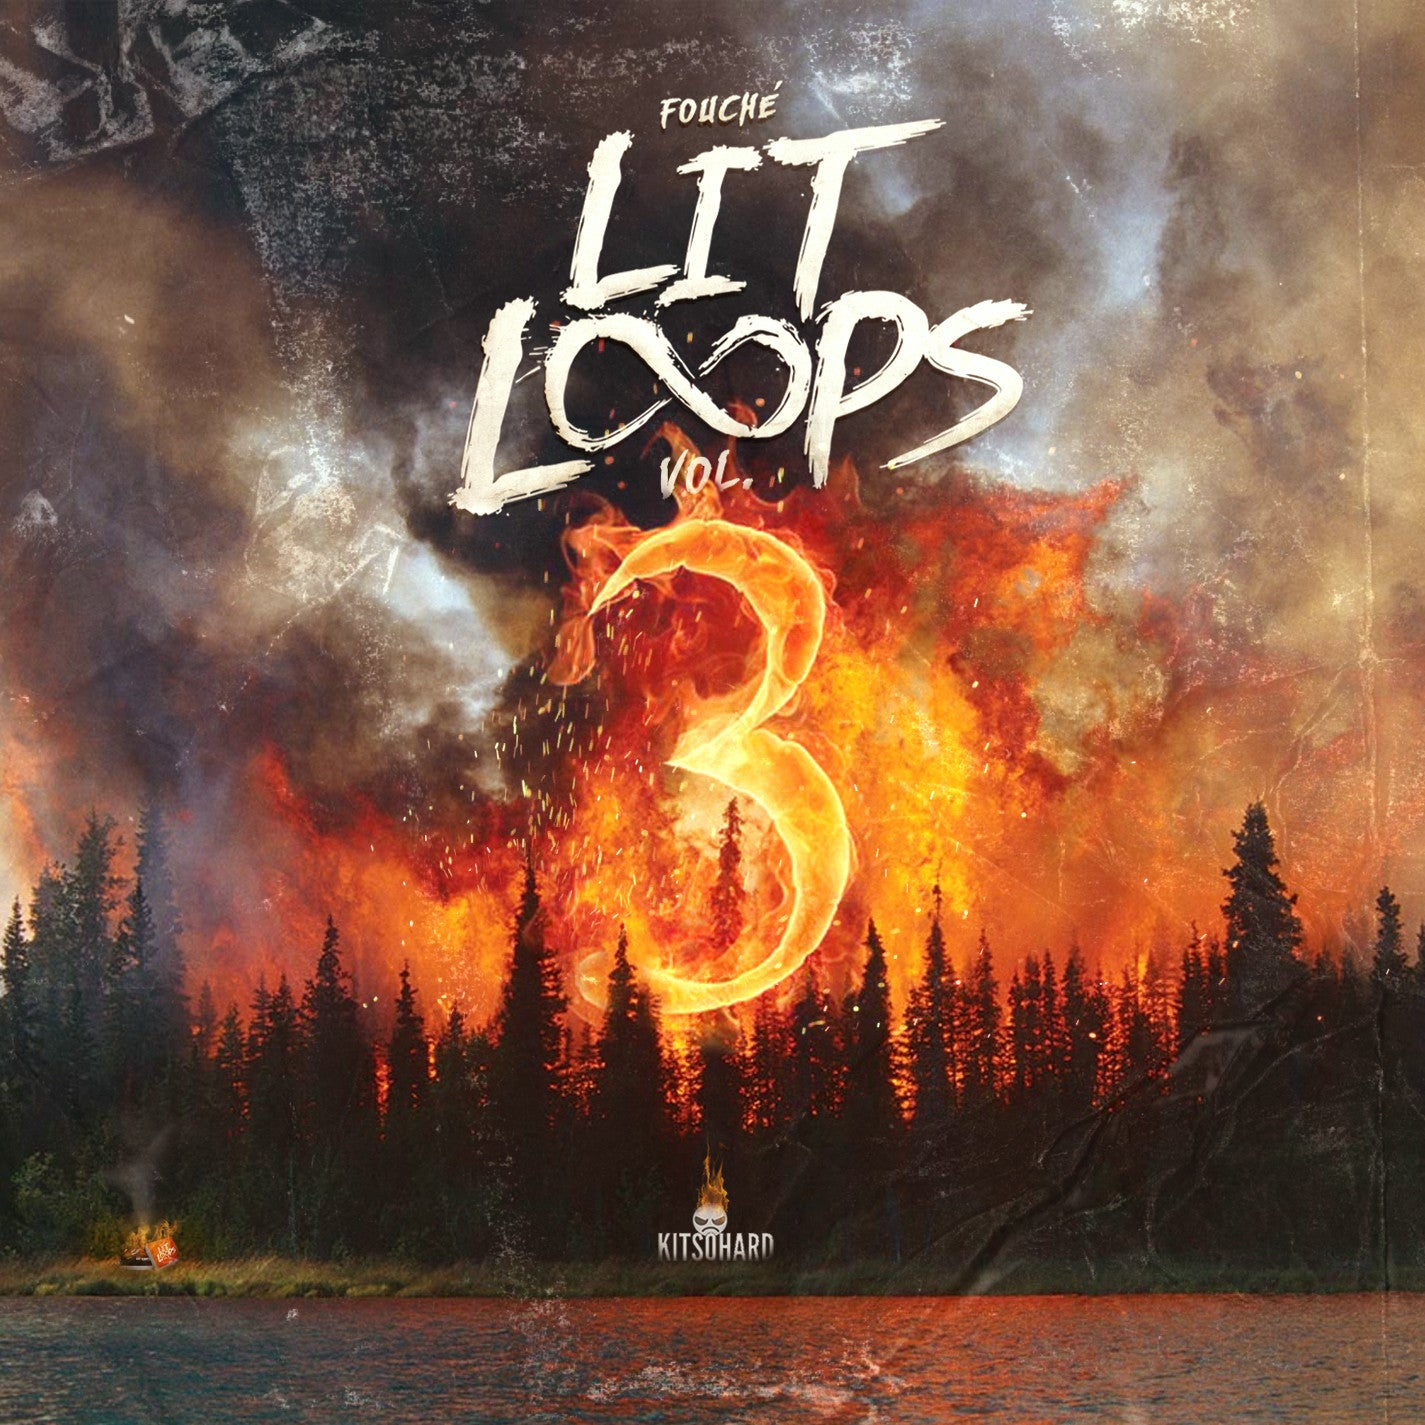 Lit Loops Vol. 3